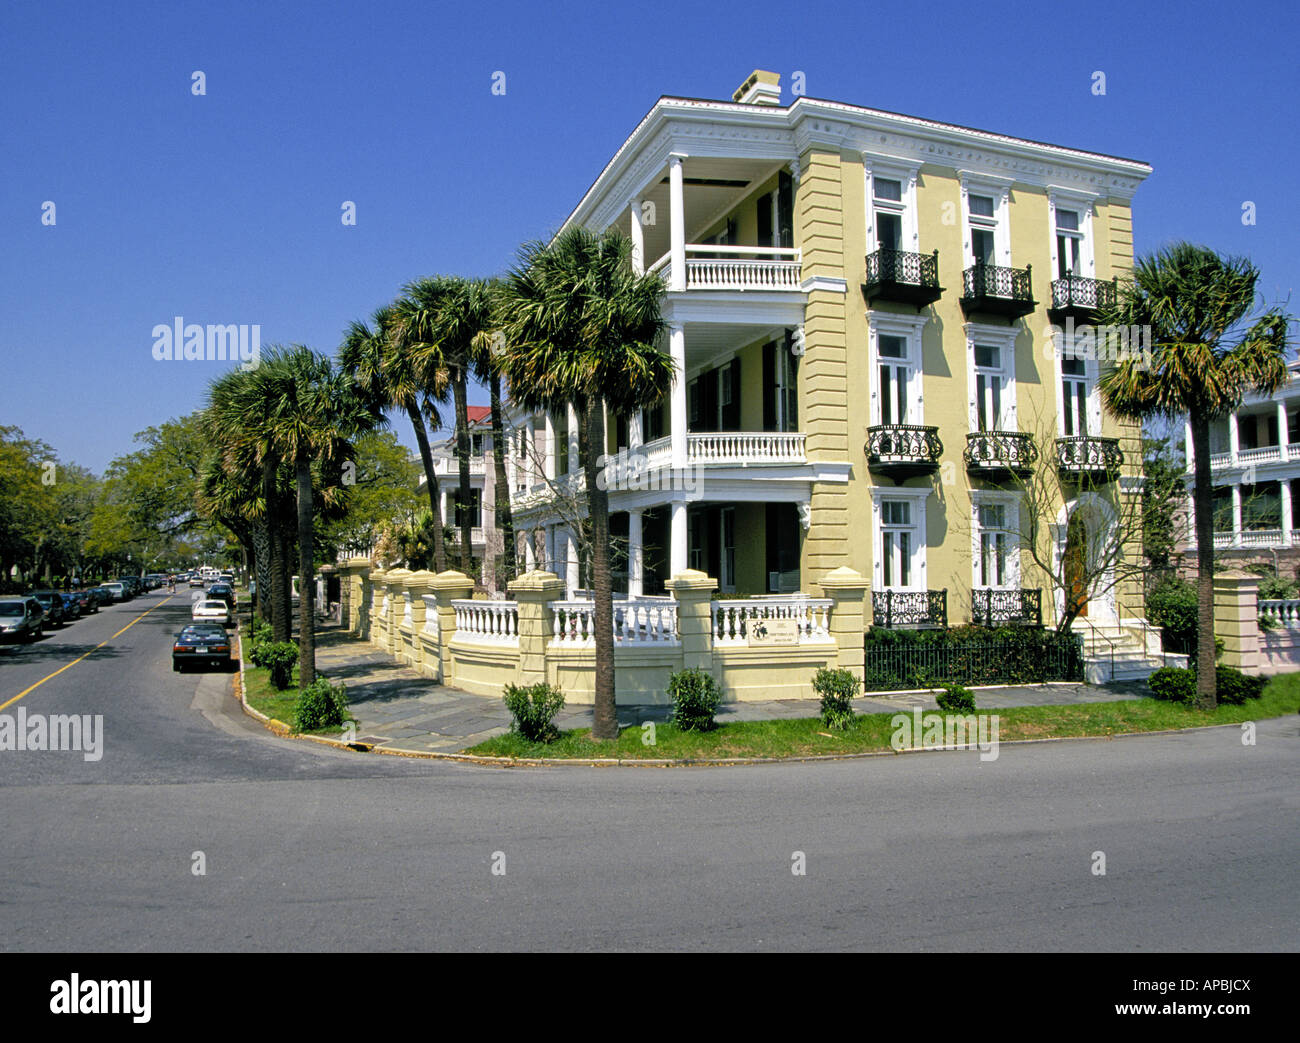 A view of the beautiful historic homes in the historic district of Charleston - Stock Image